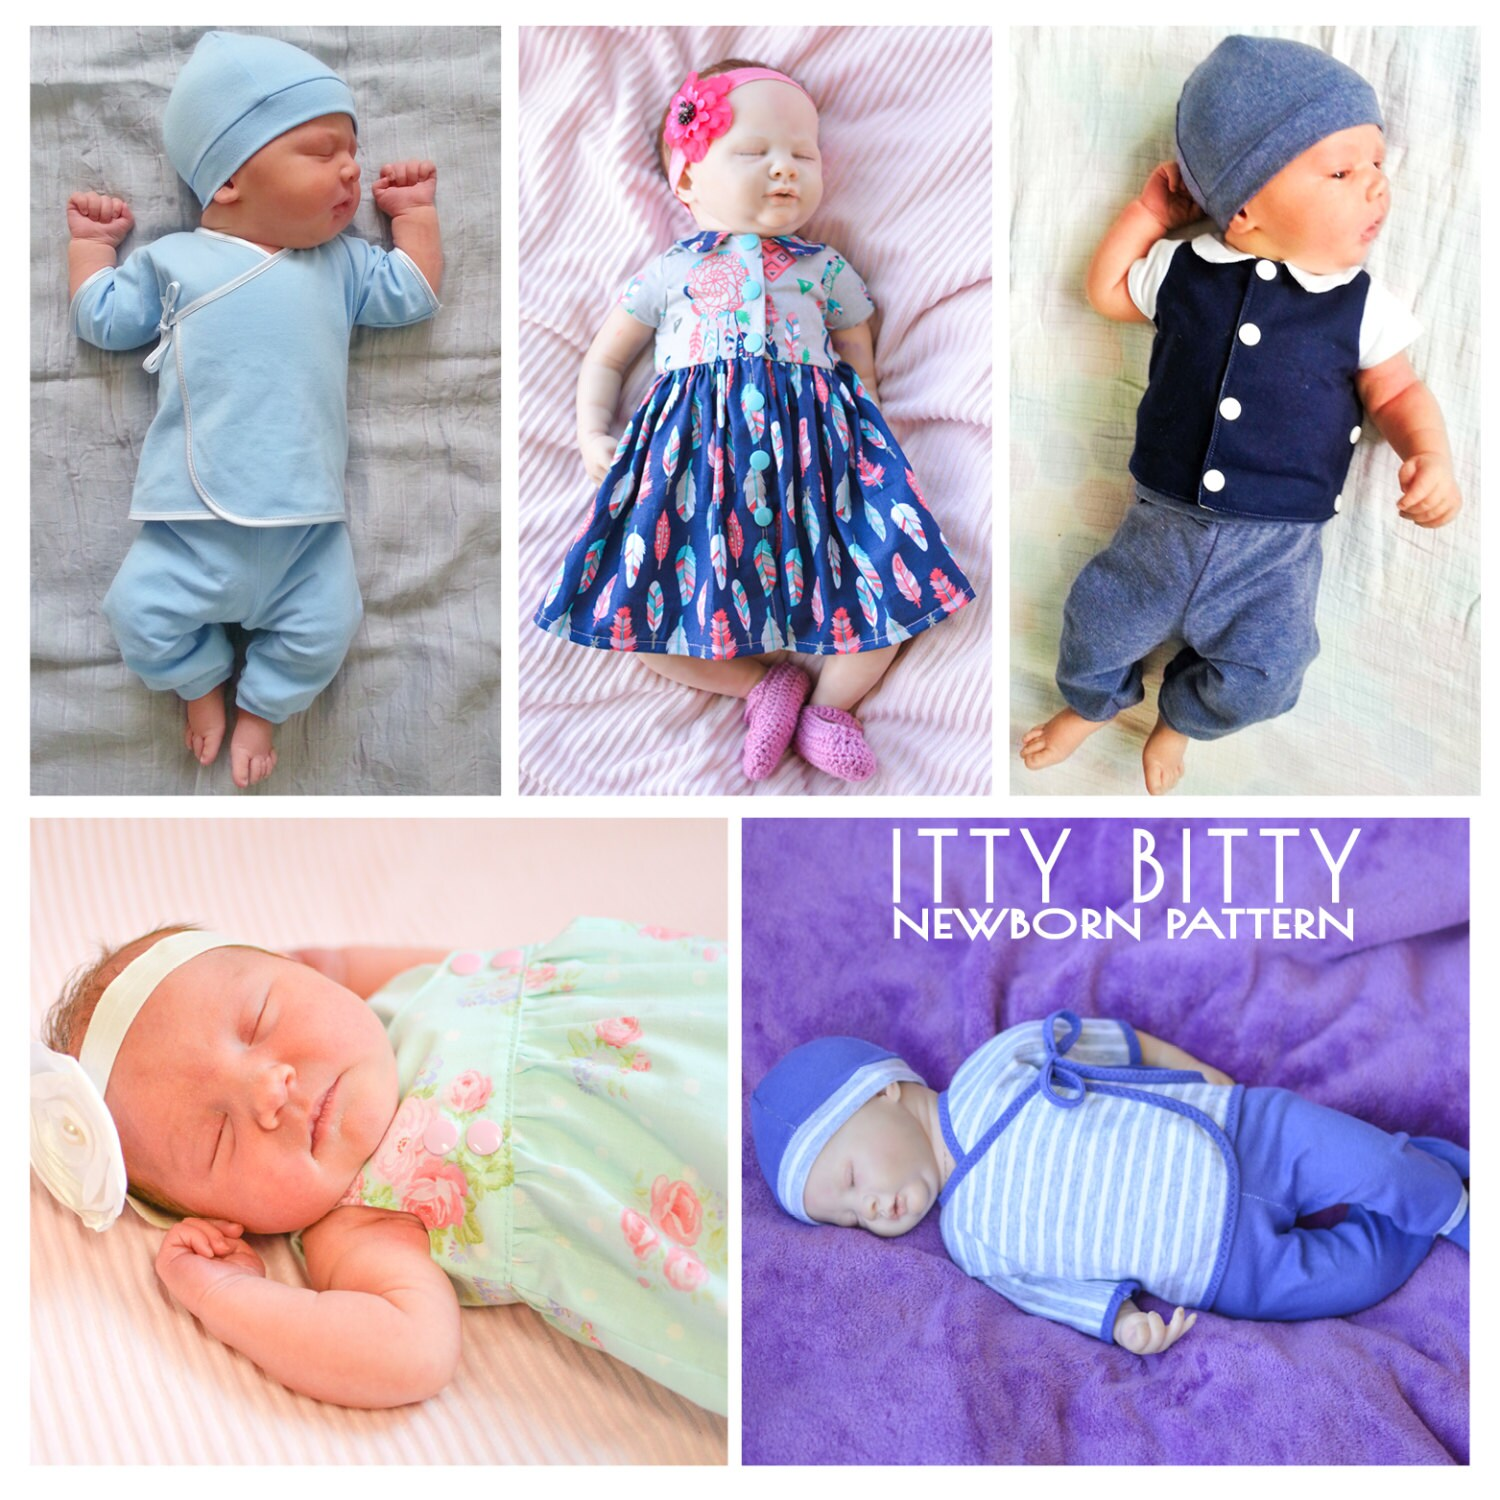 ITTY BITTY Newborn & Premature Prem baby sewing outfits Micro